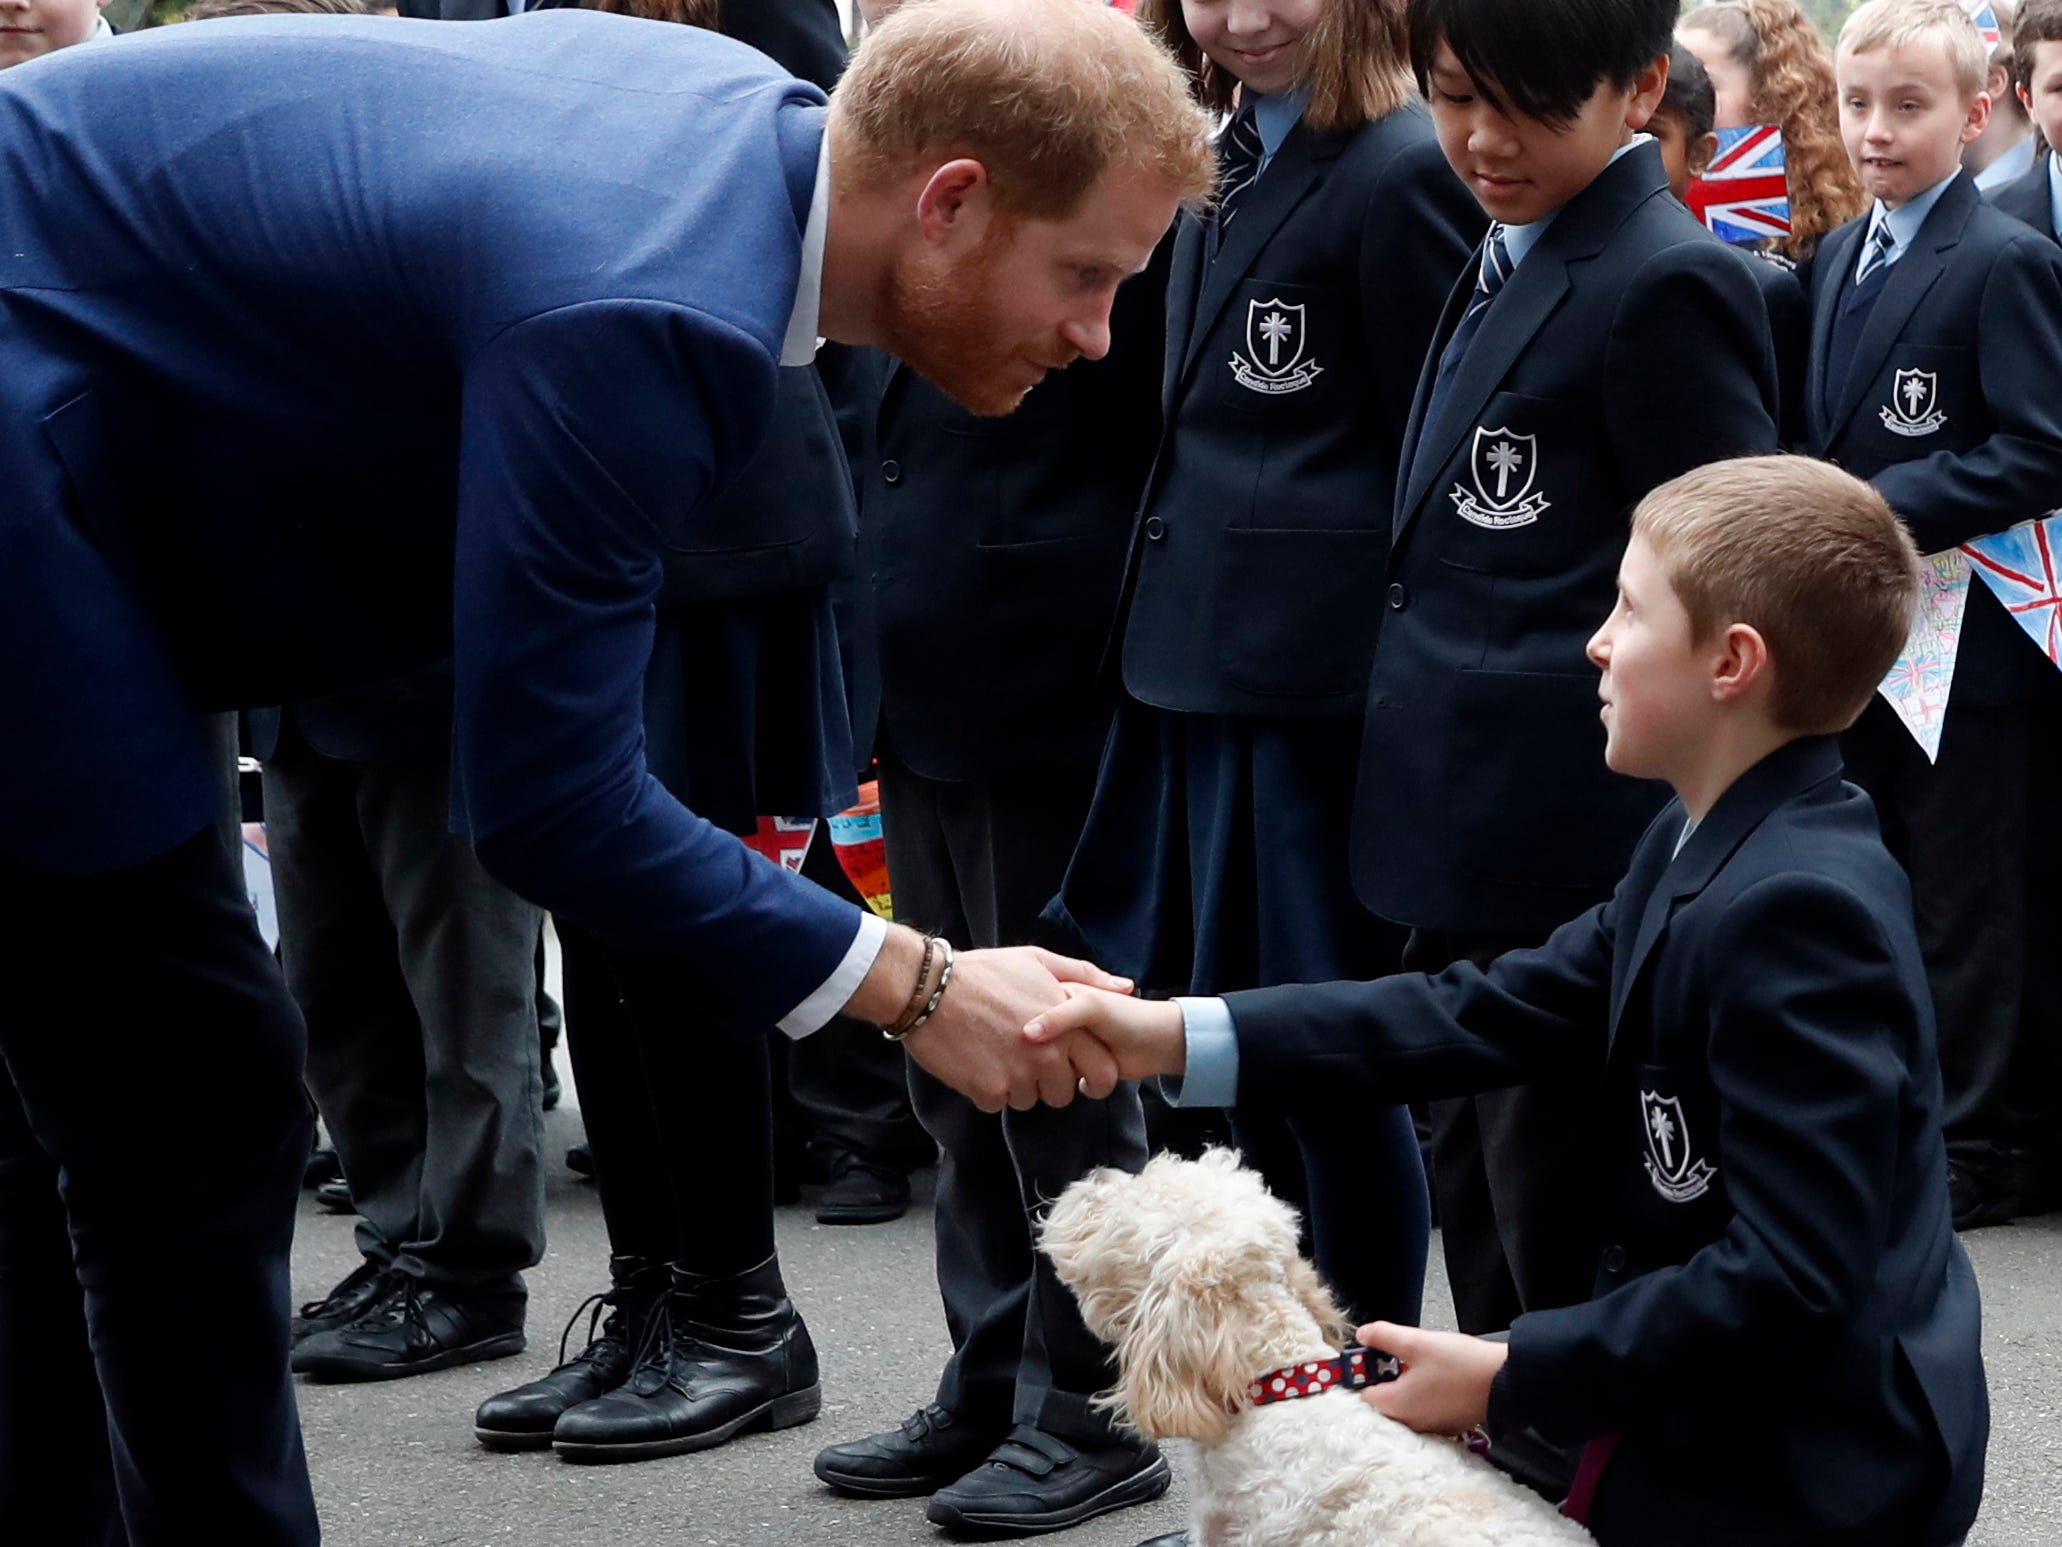 Britain's Prince Harry greets pupils from St Vincent's Catholic Primary School, along with the head teachers dog called Winnie, before going on to plant a tree from the Woodland Trust St Vincent's Catholic Primary School in Acton, in London, Wednesday, March 20, 2019. Prince Harry met the school's Eco Ambassadors, and then joined the children as they plant the saplings before planting his own tree, marking the achievements of the QCC and the Woodland Trust in providing 74,000 trees across the UK. (AP Photo/Alastair Grant, Pool) ORG XMIT: XAG120